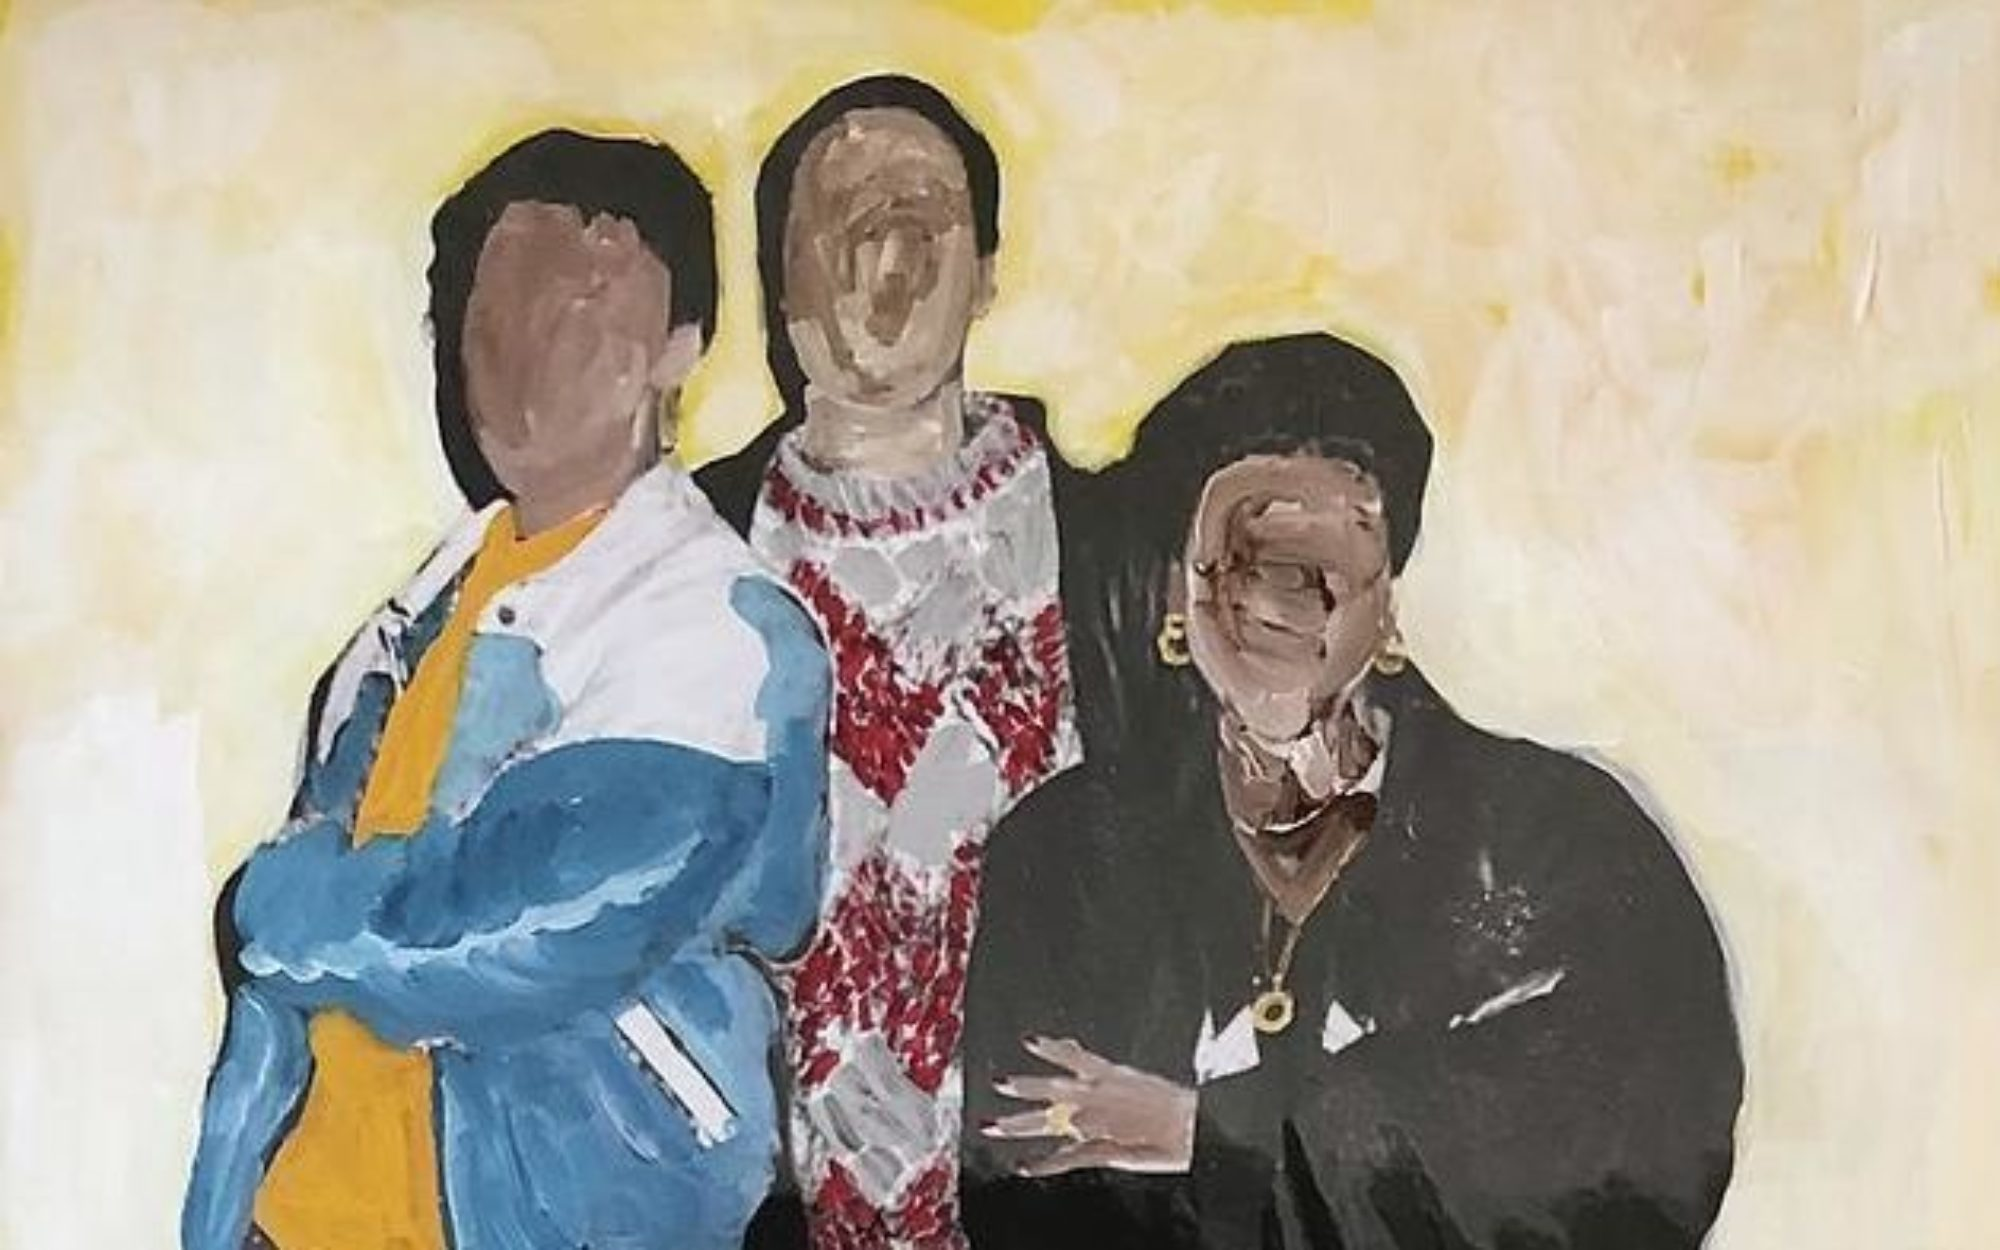 Three figures stand together with their arms crossed